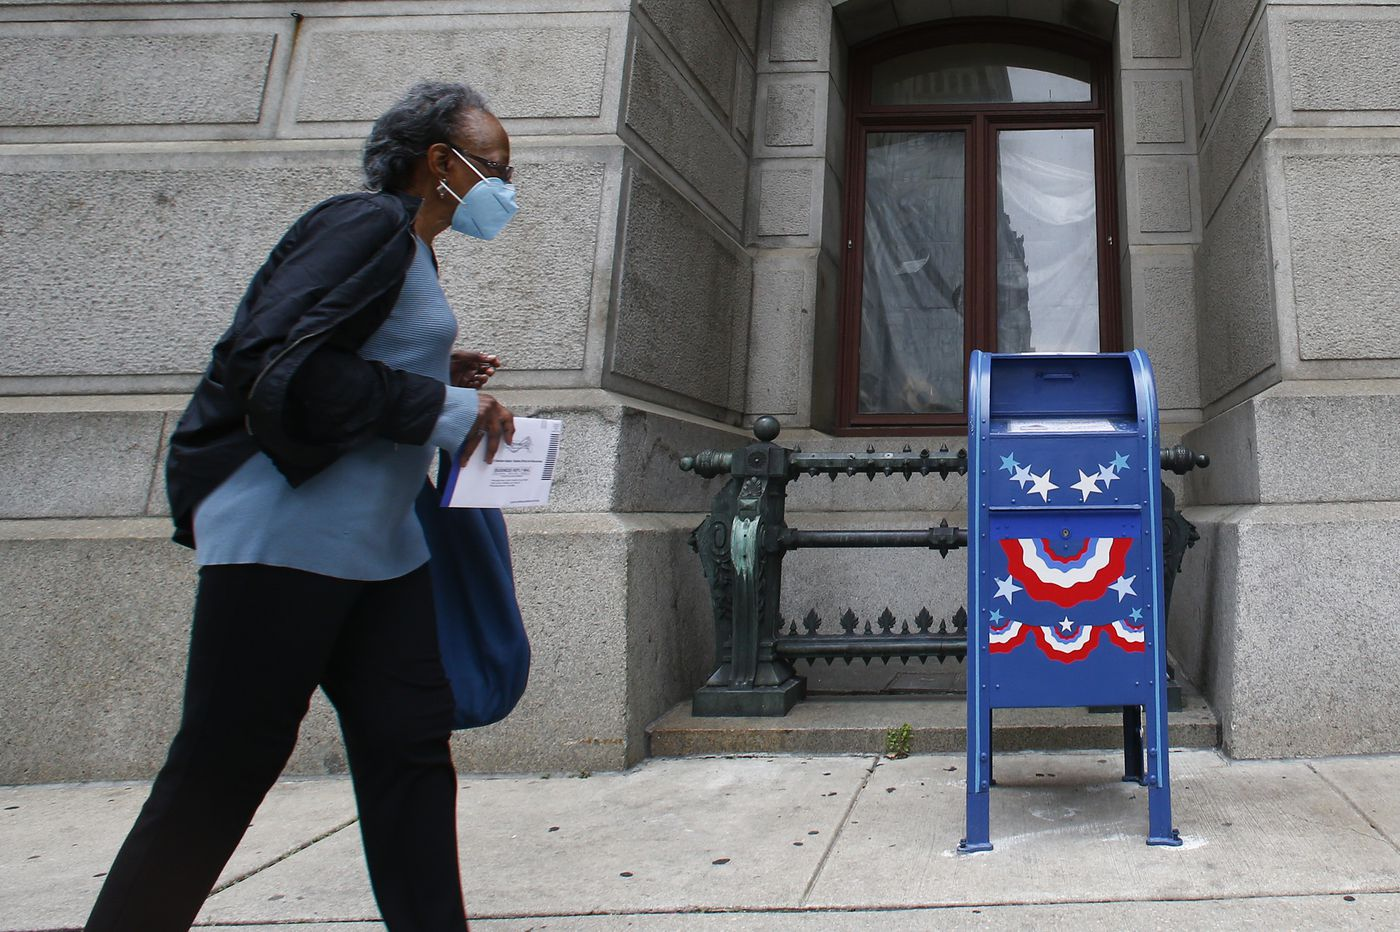 The primary election is our only run before November: can we protect both democracy and health? | Editorial